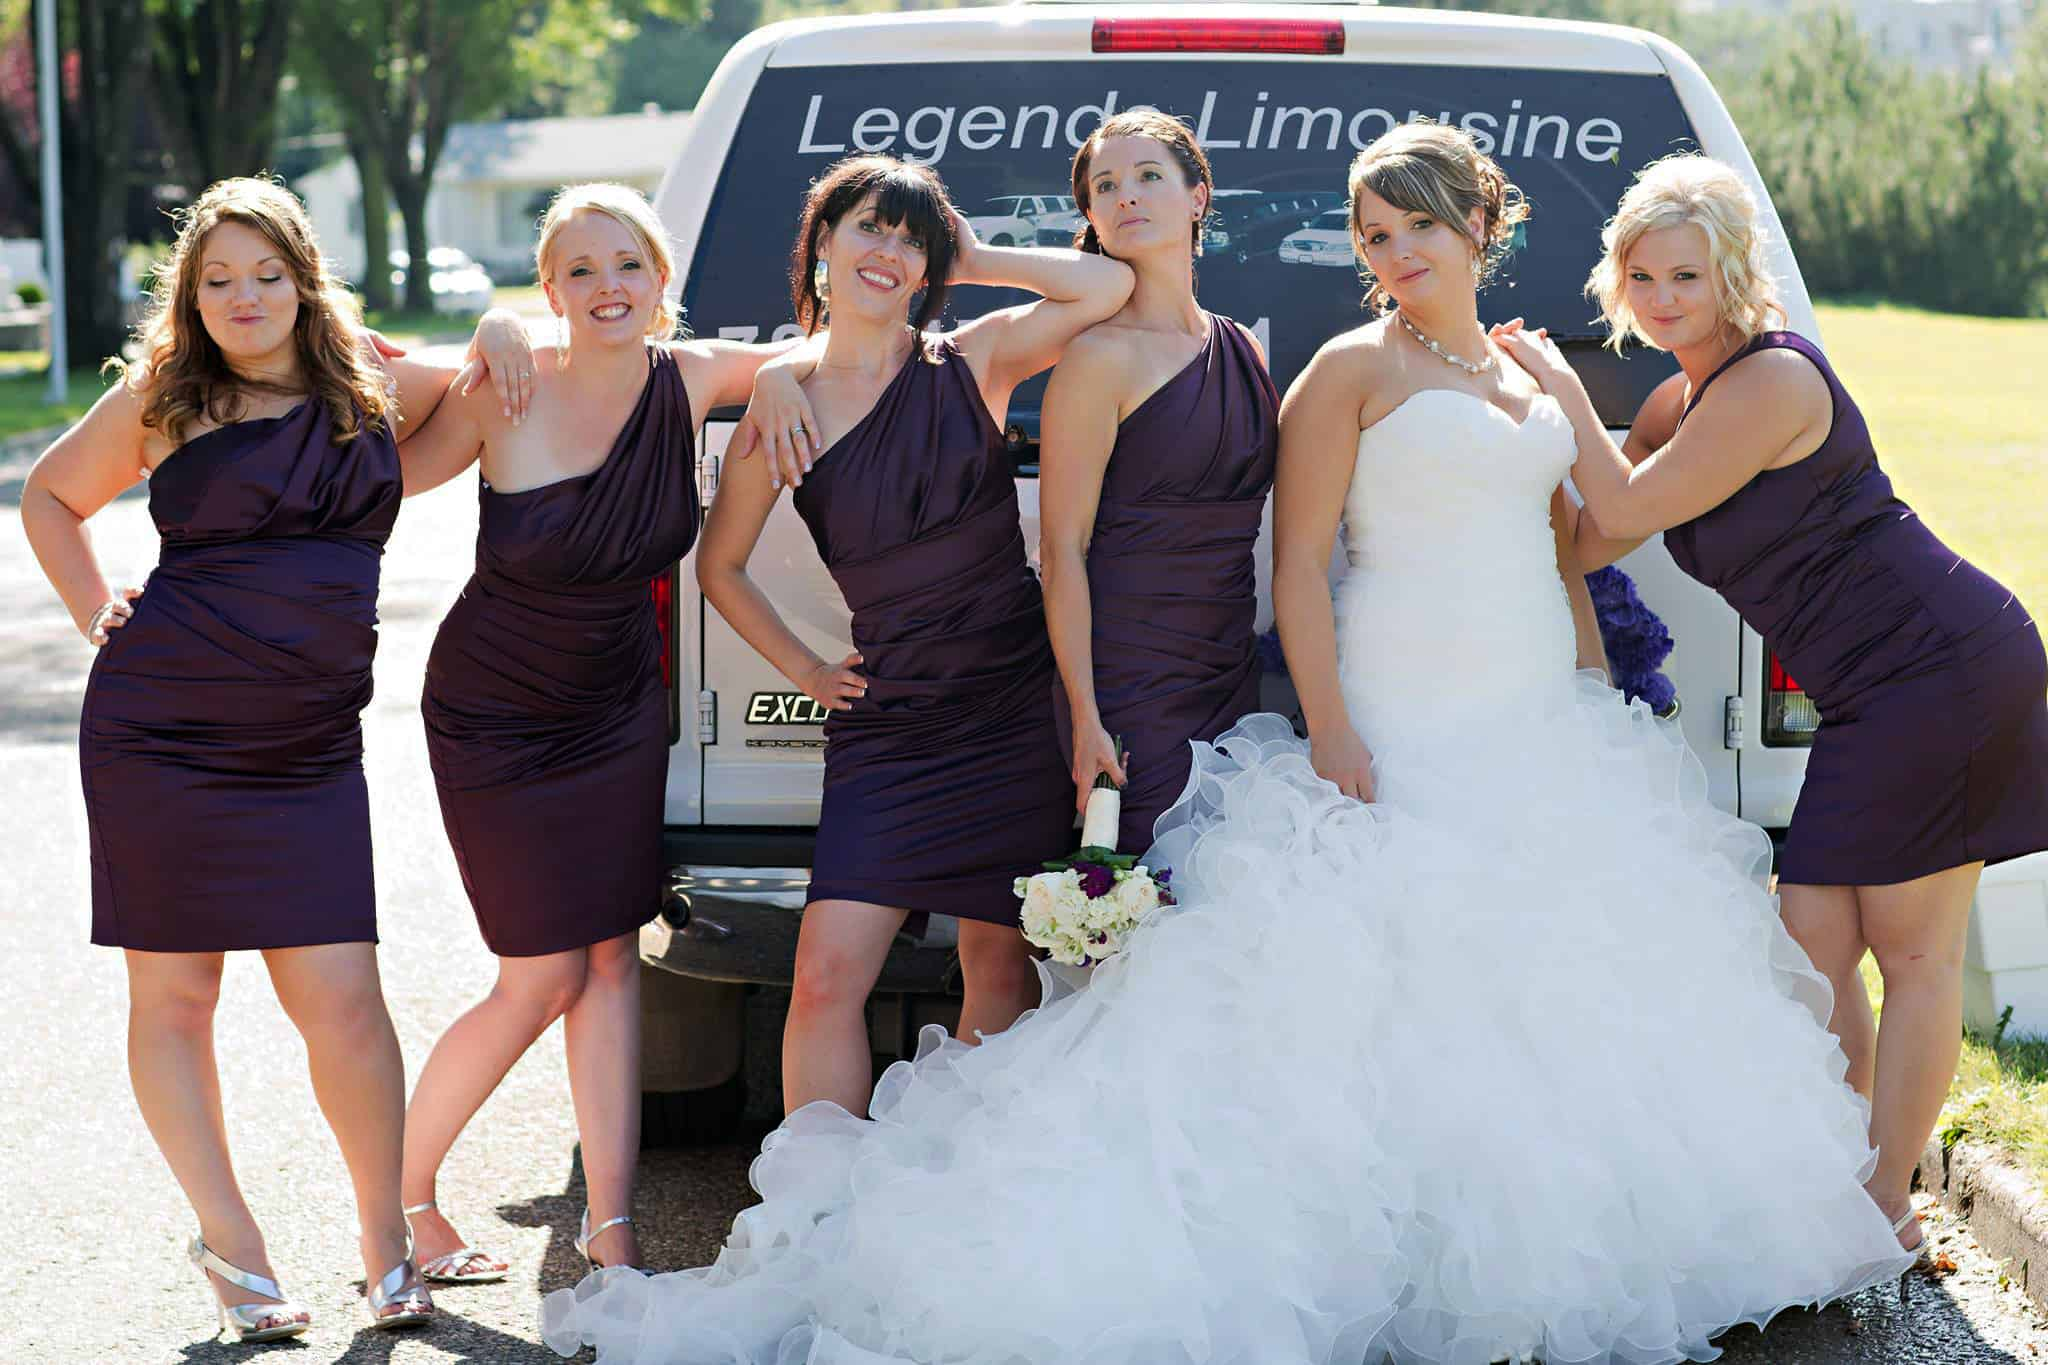 Edmonton Limos Legends Limousine Weddings Wedding Packages